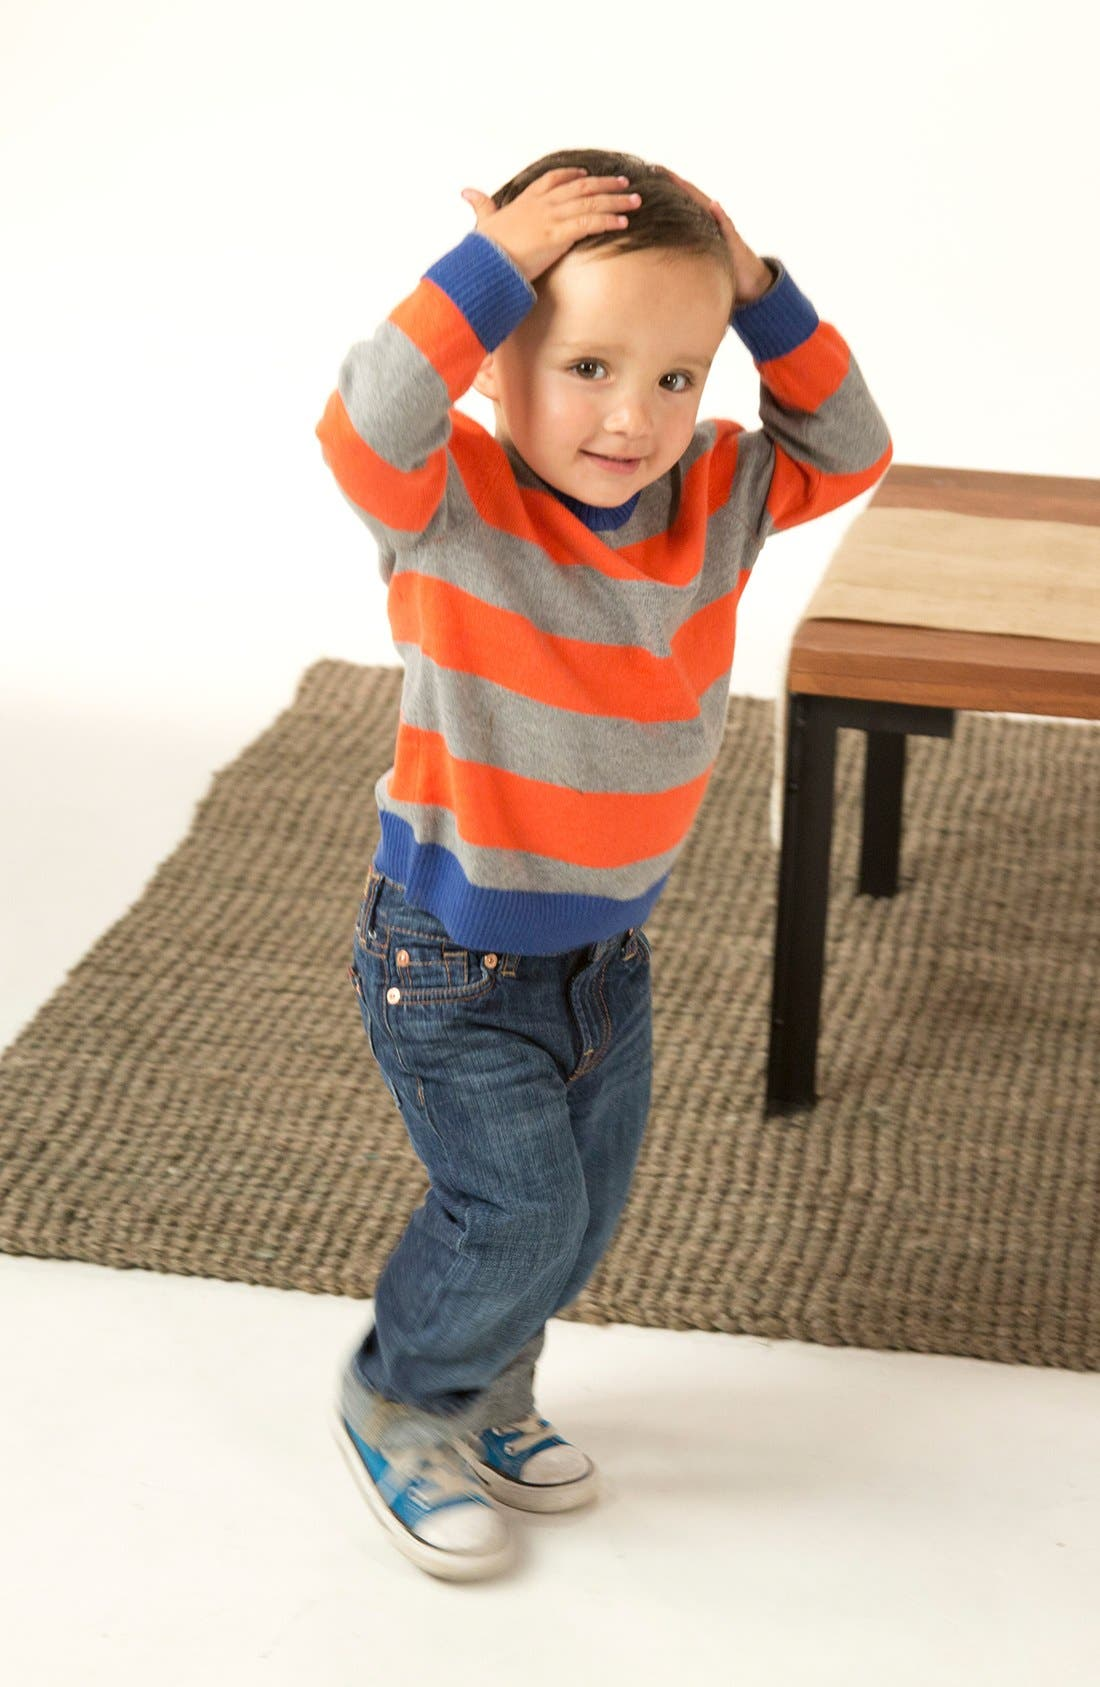 Alternate Image 1 Selected - Tucker + Tate Stripe Sweater & Jeans (Toddler Boys)